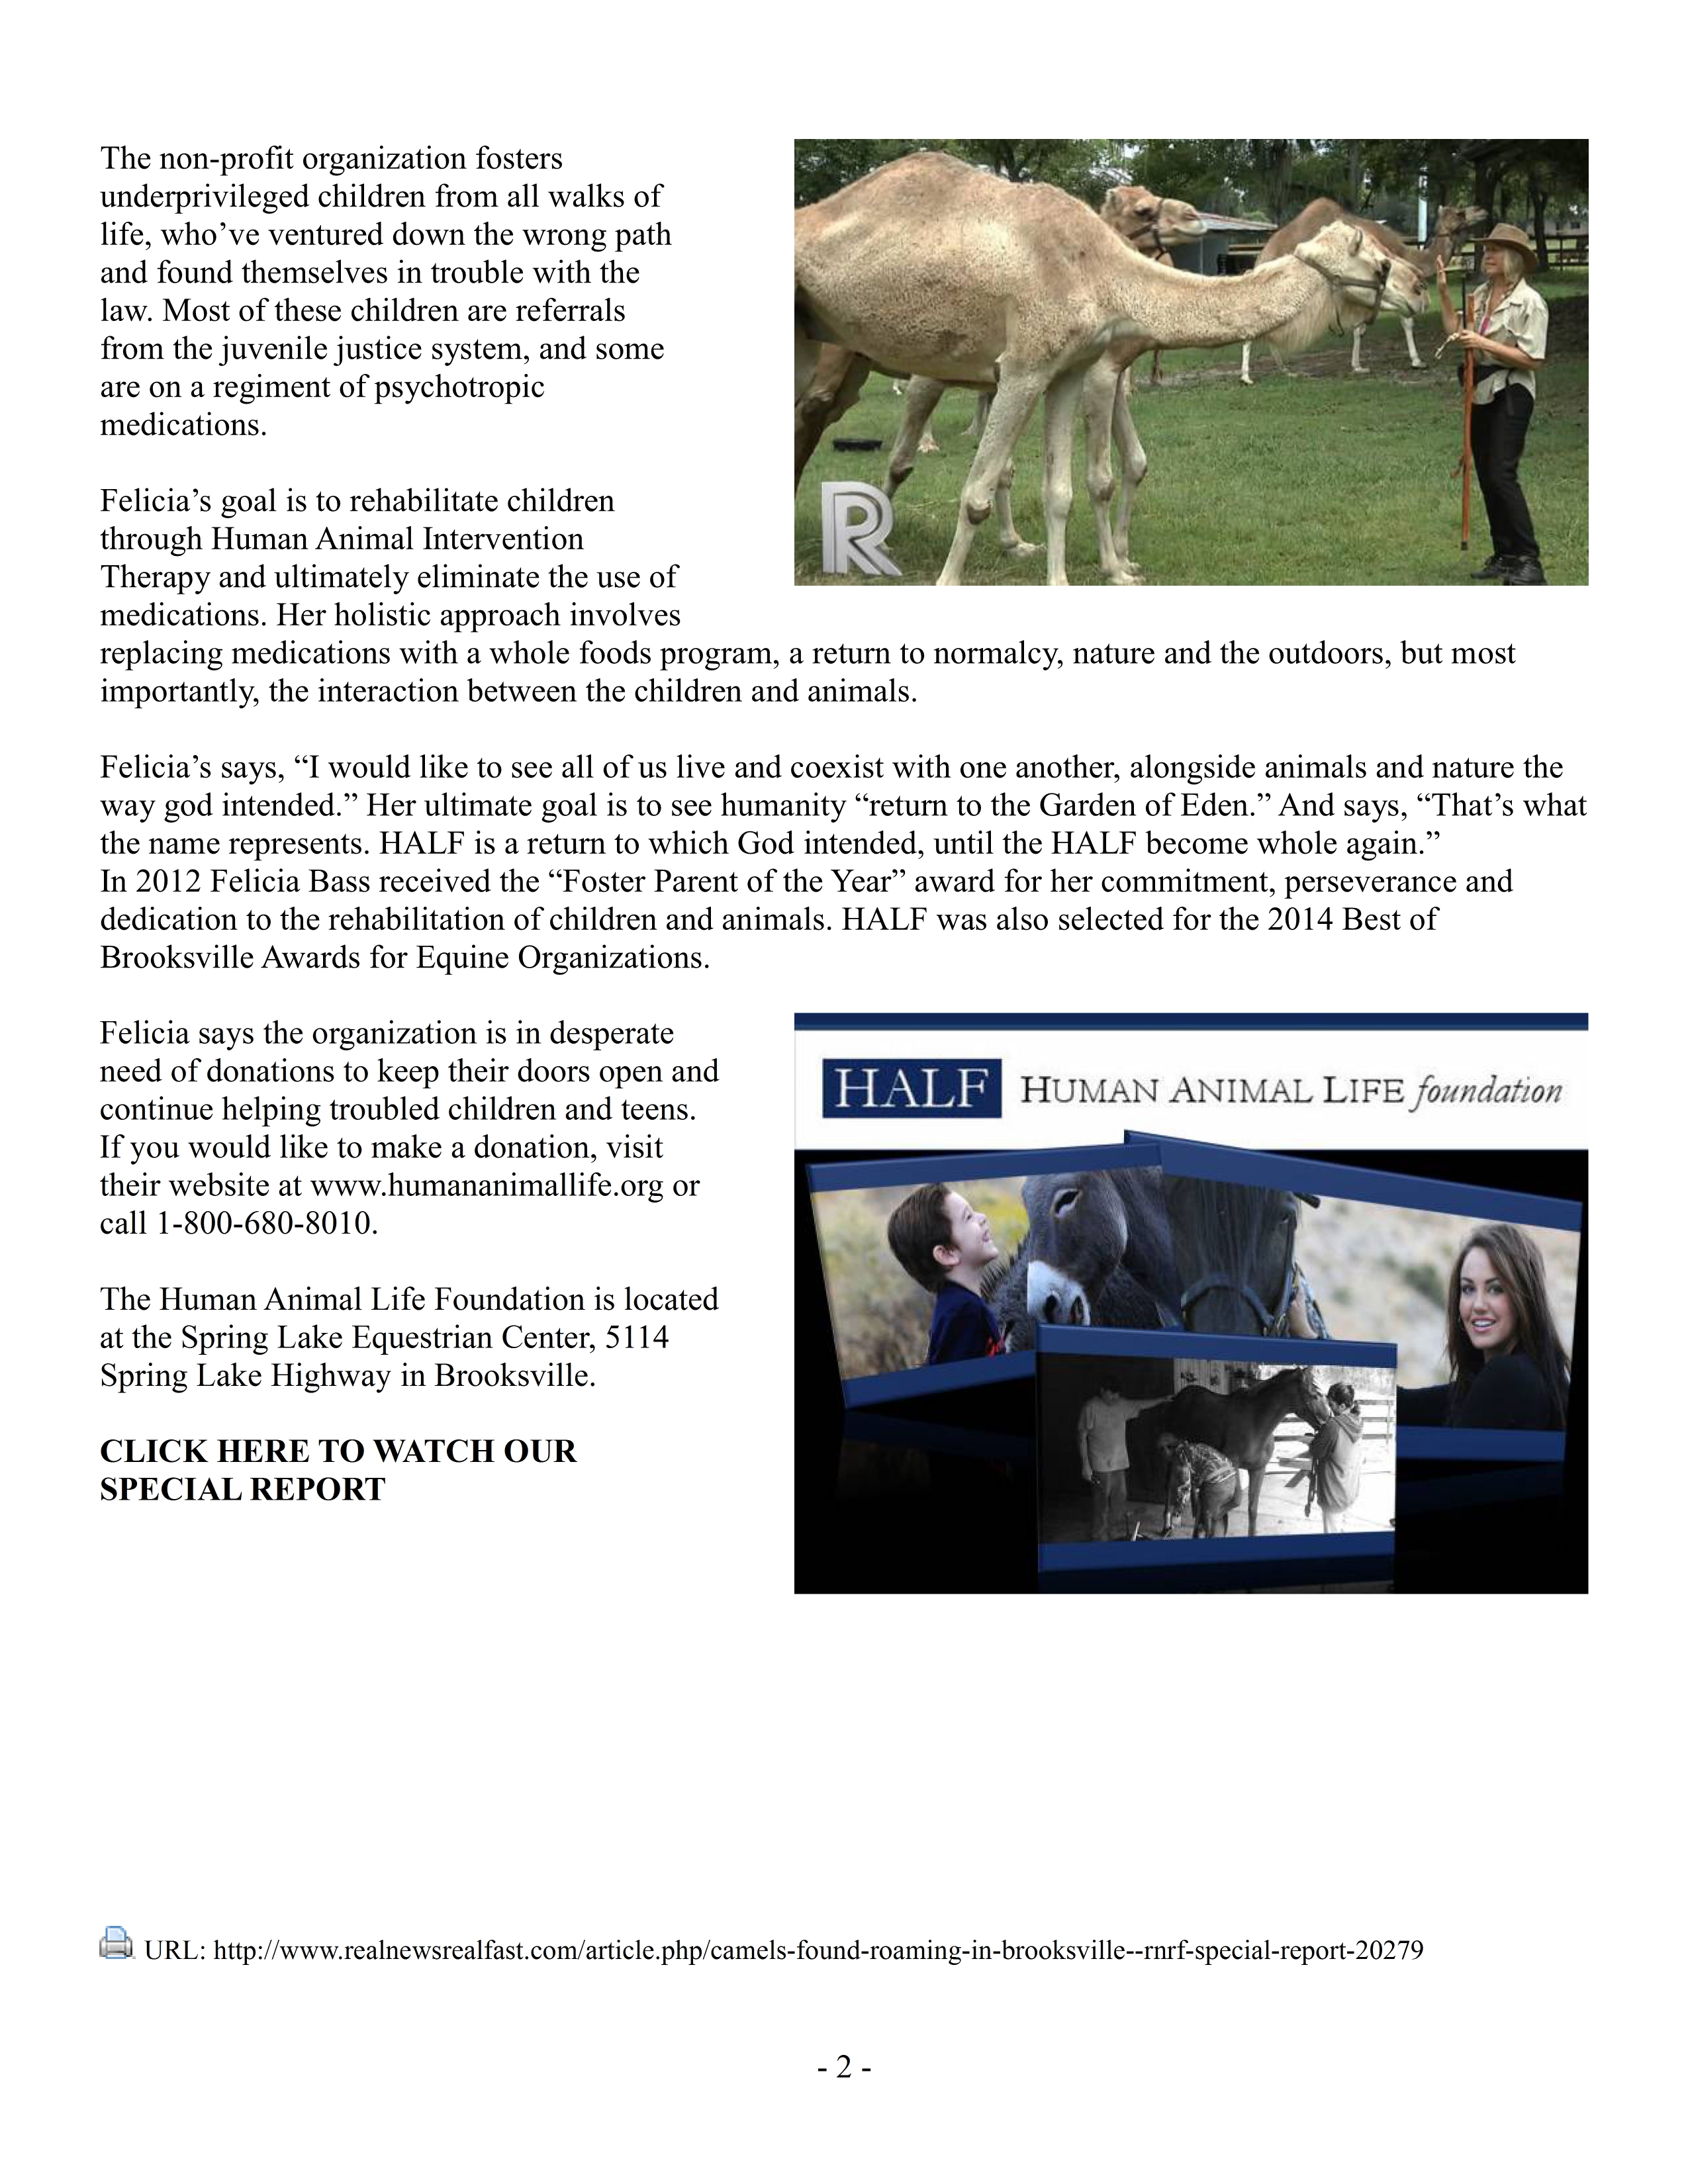 Camels Found Roaming in Brooksville - RNRF Special Report 09-14-2014 Pg2